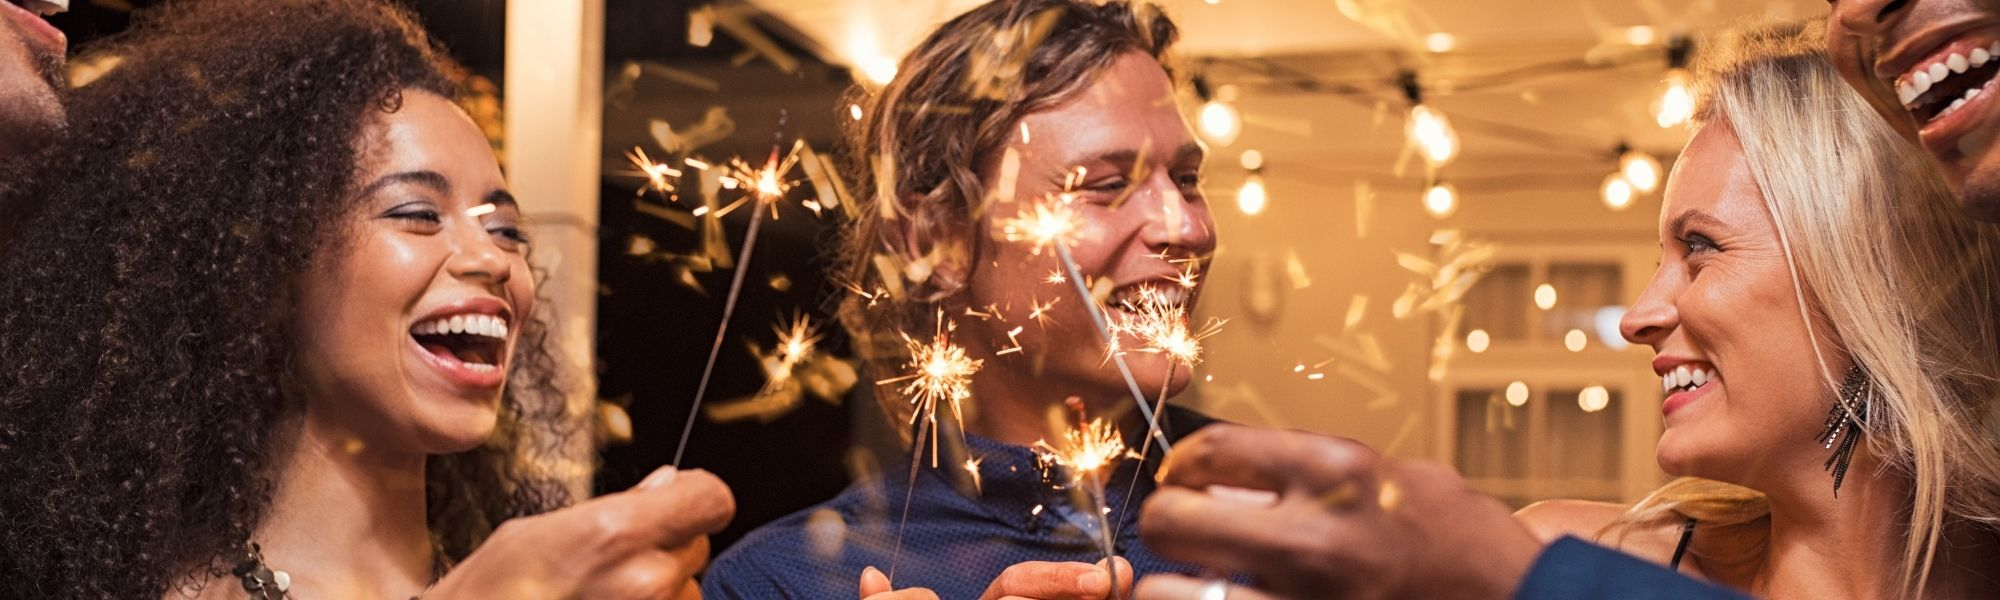 6 TIPS FOR SETTING REALISTIC GOALS IN THE NEW YEAR